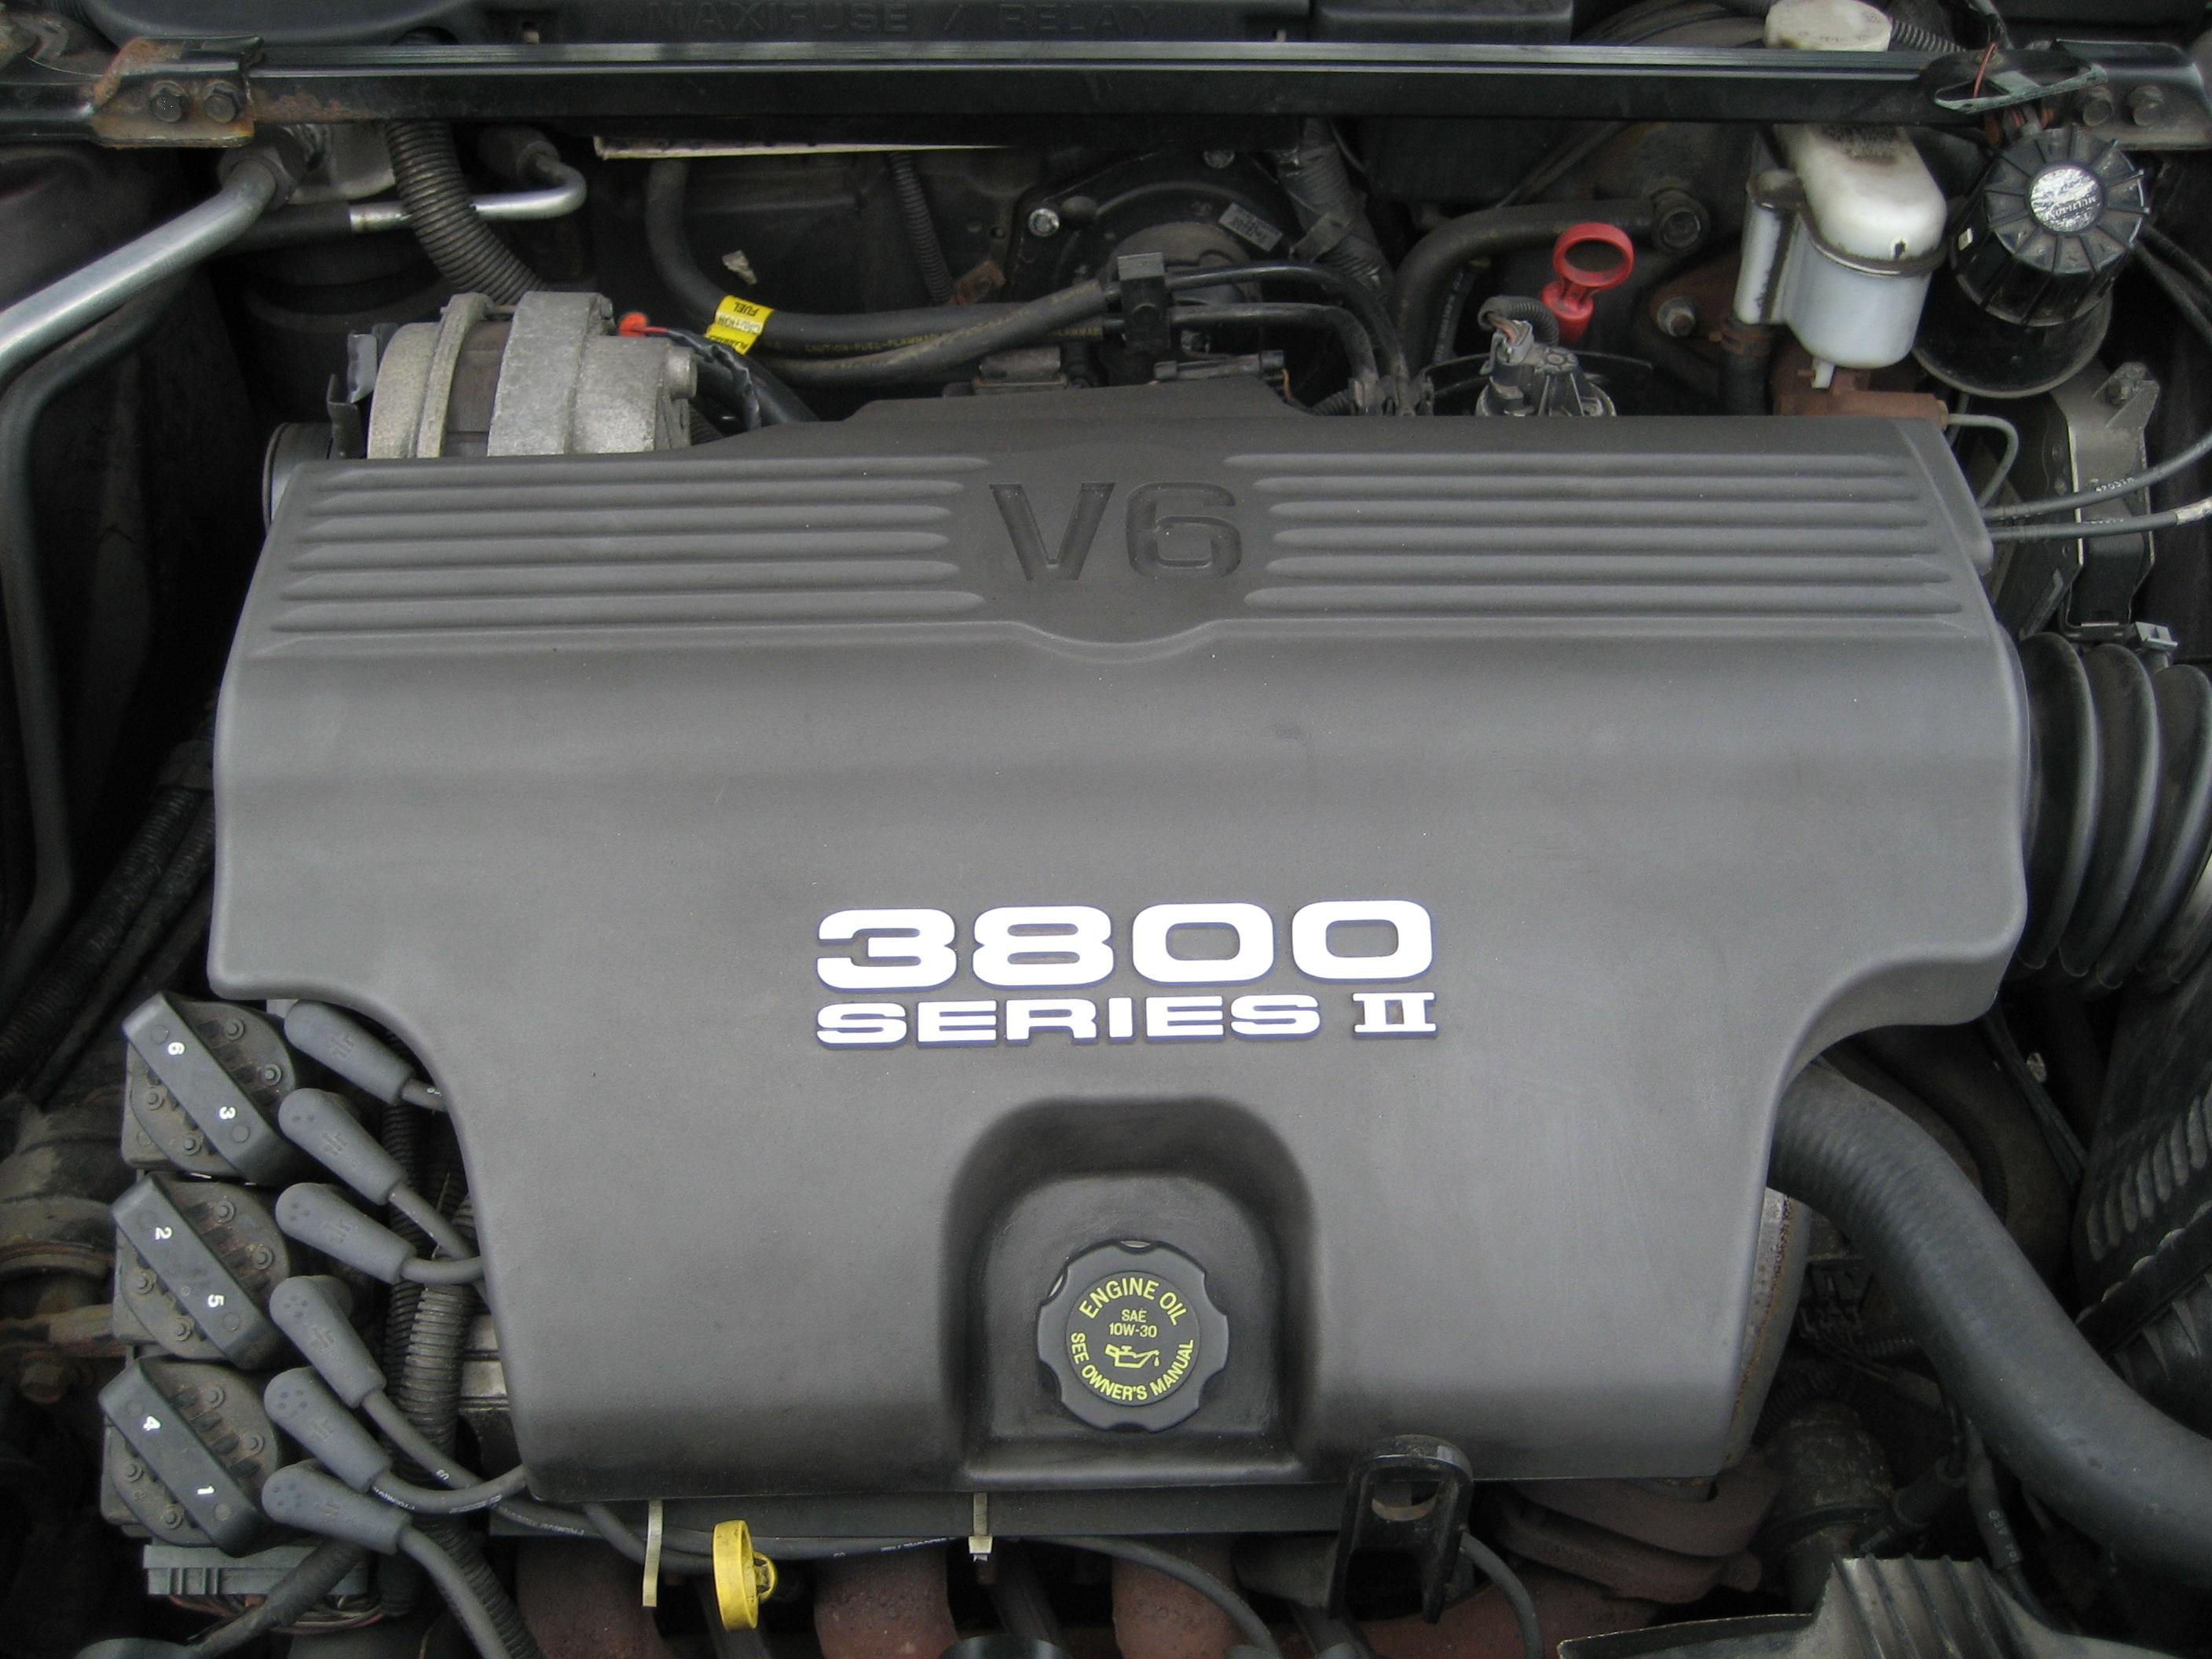 3800 Series 2 Engine Parts http://en.wikipedia.org/wiki/File:GM_3800_Series_Naturally_Aspirated.jpg